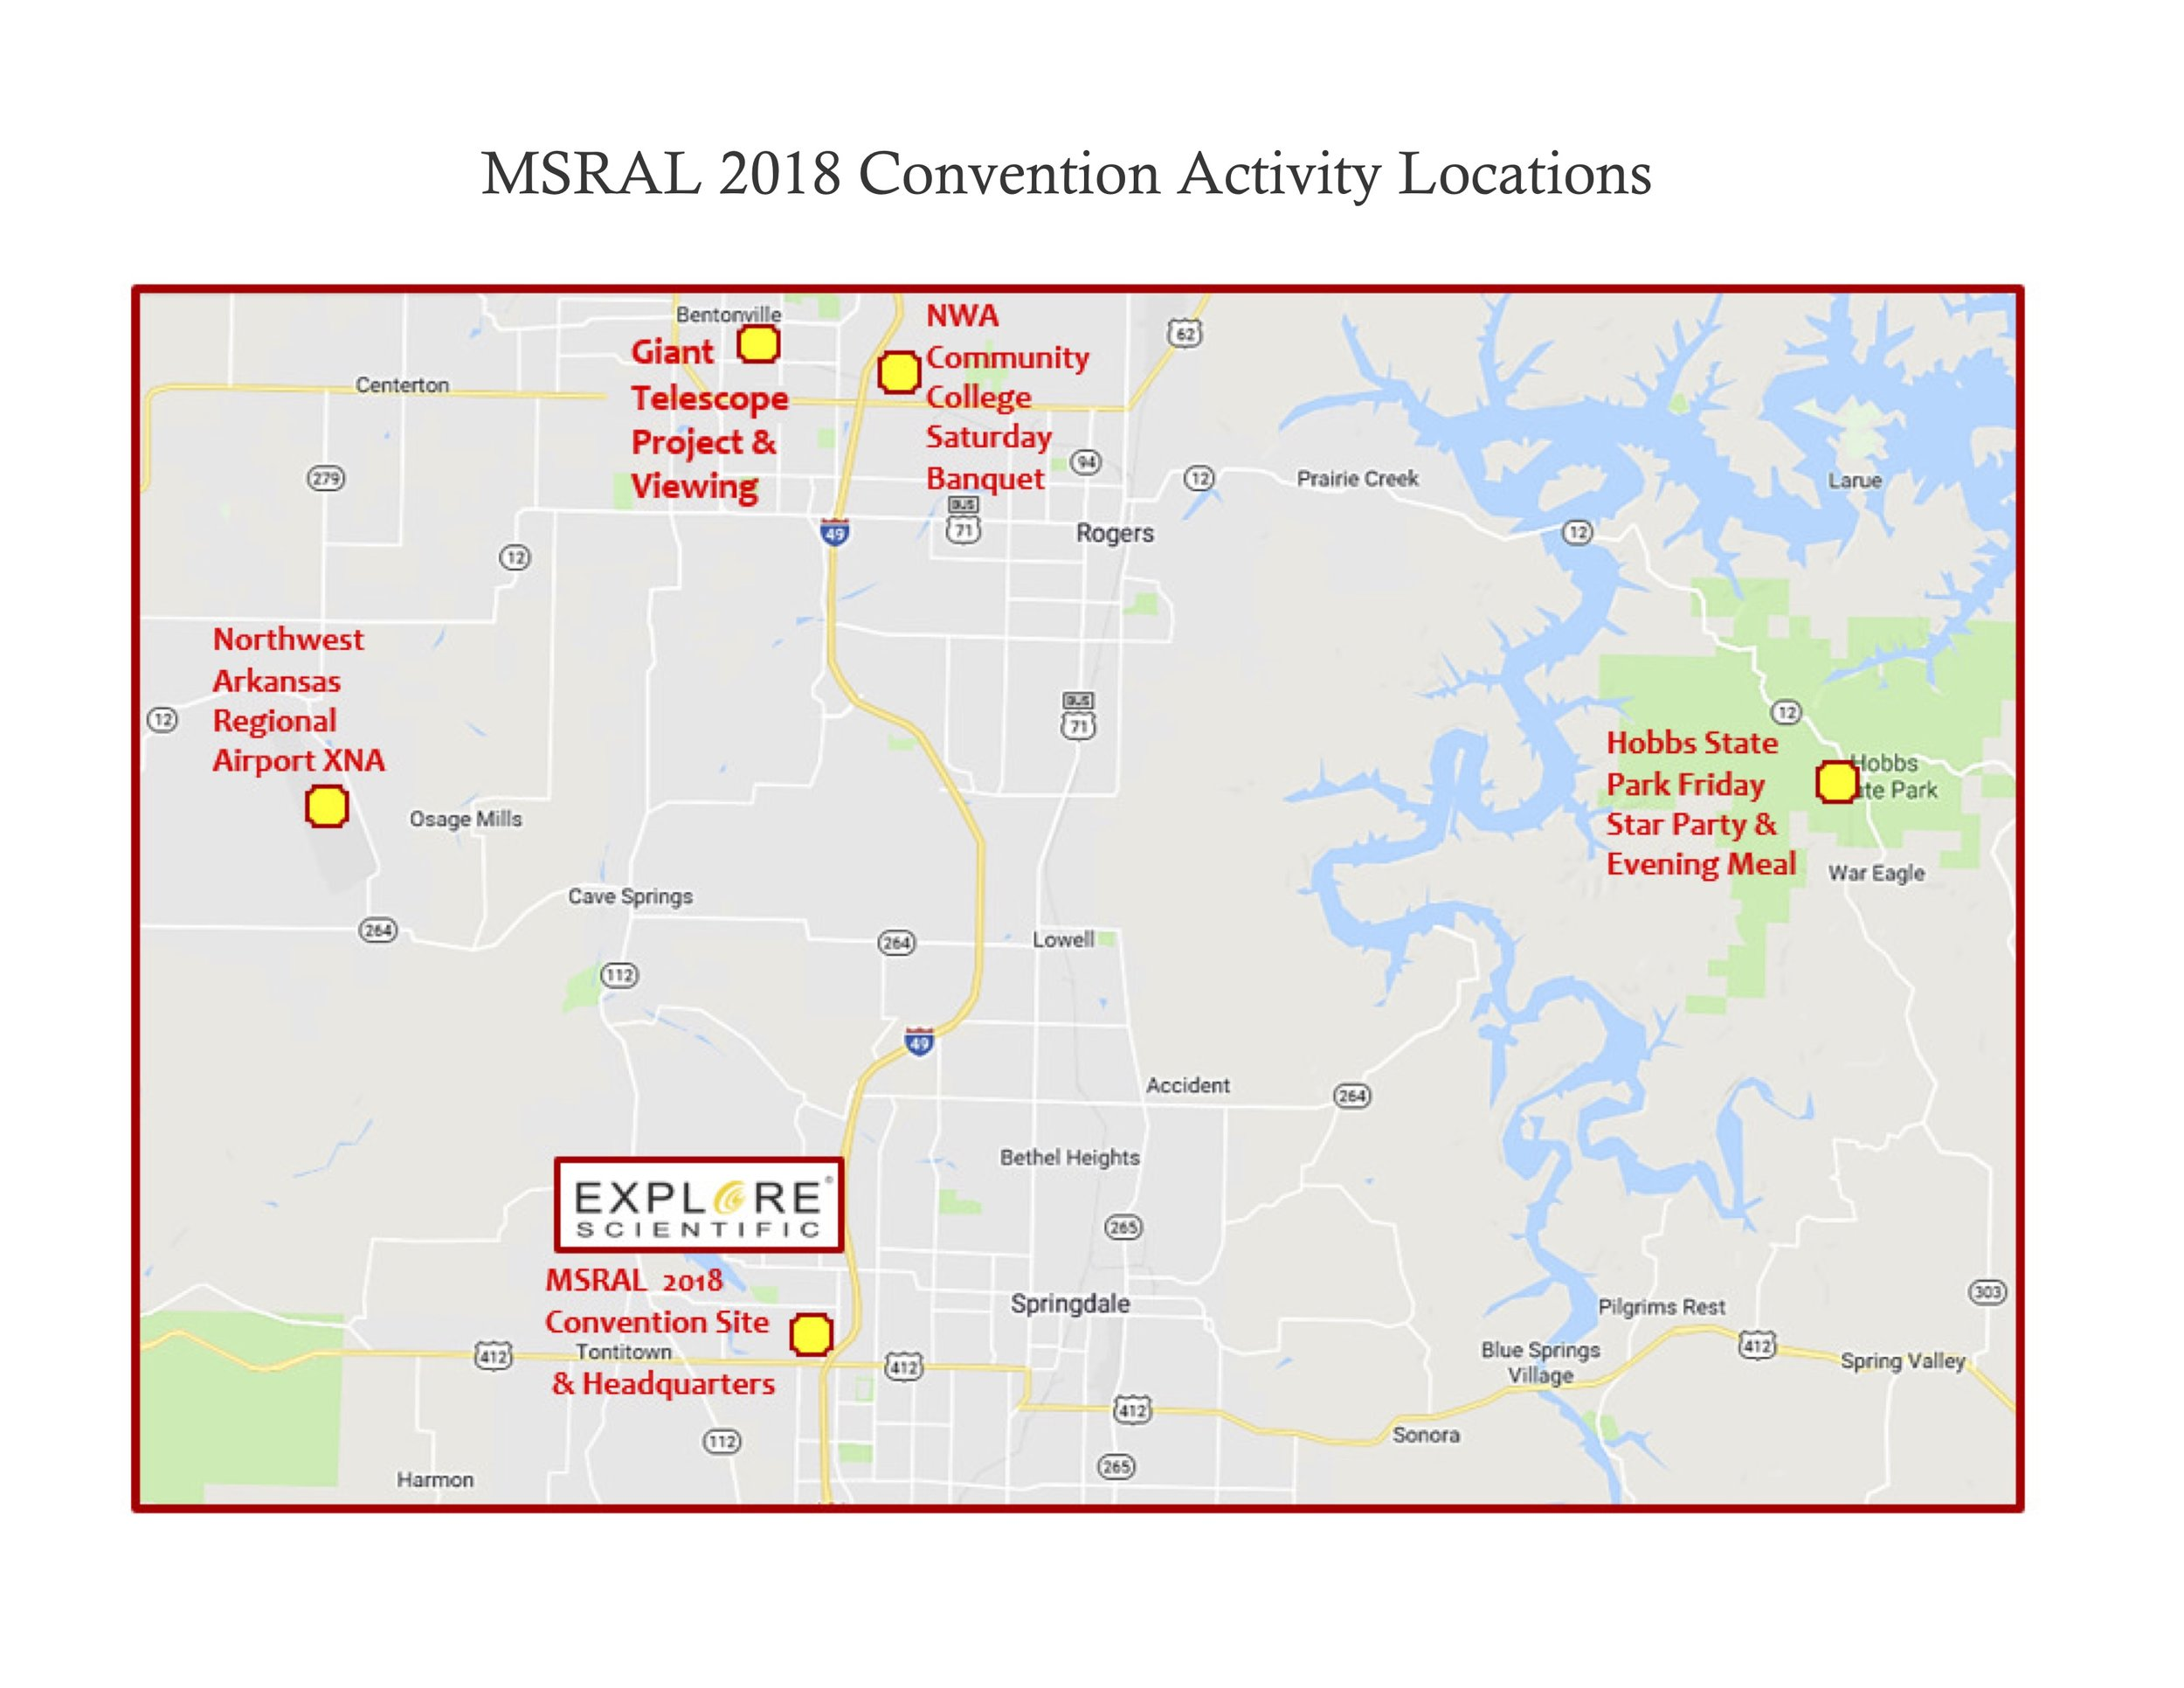 MSRAL2018-Convention_locations.jpg